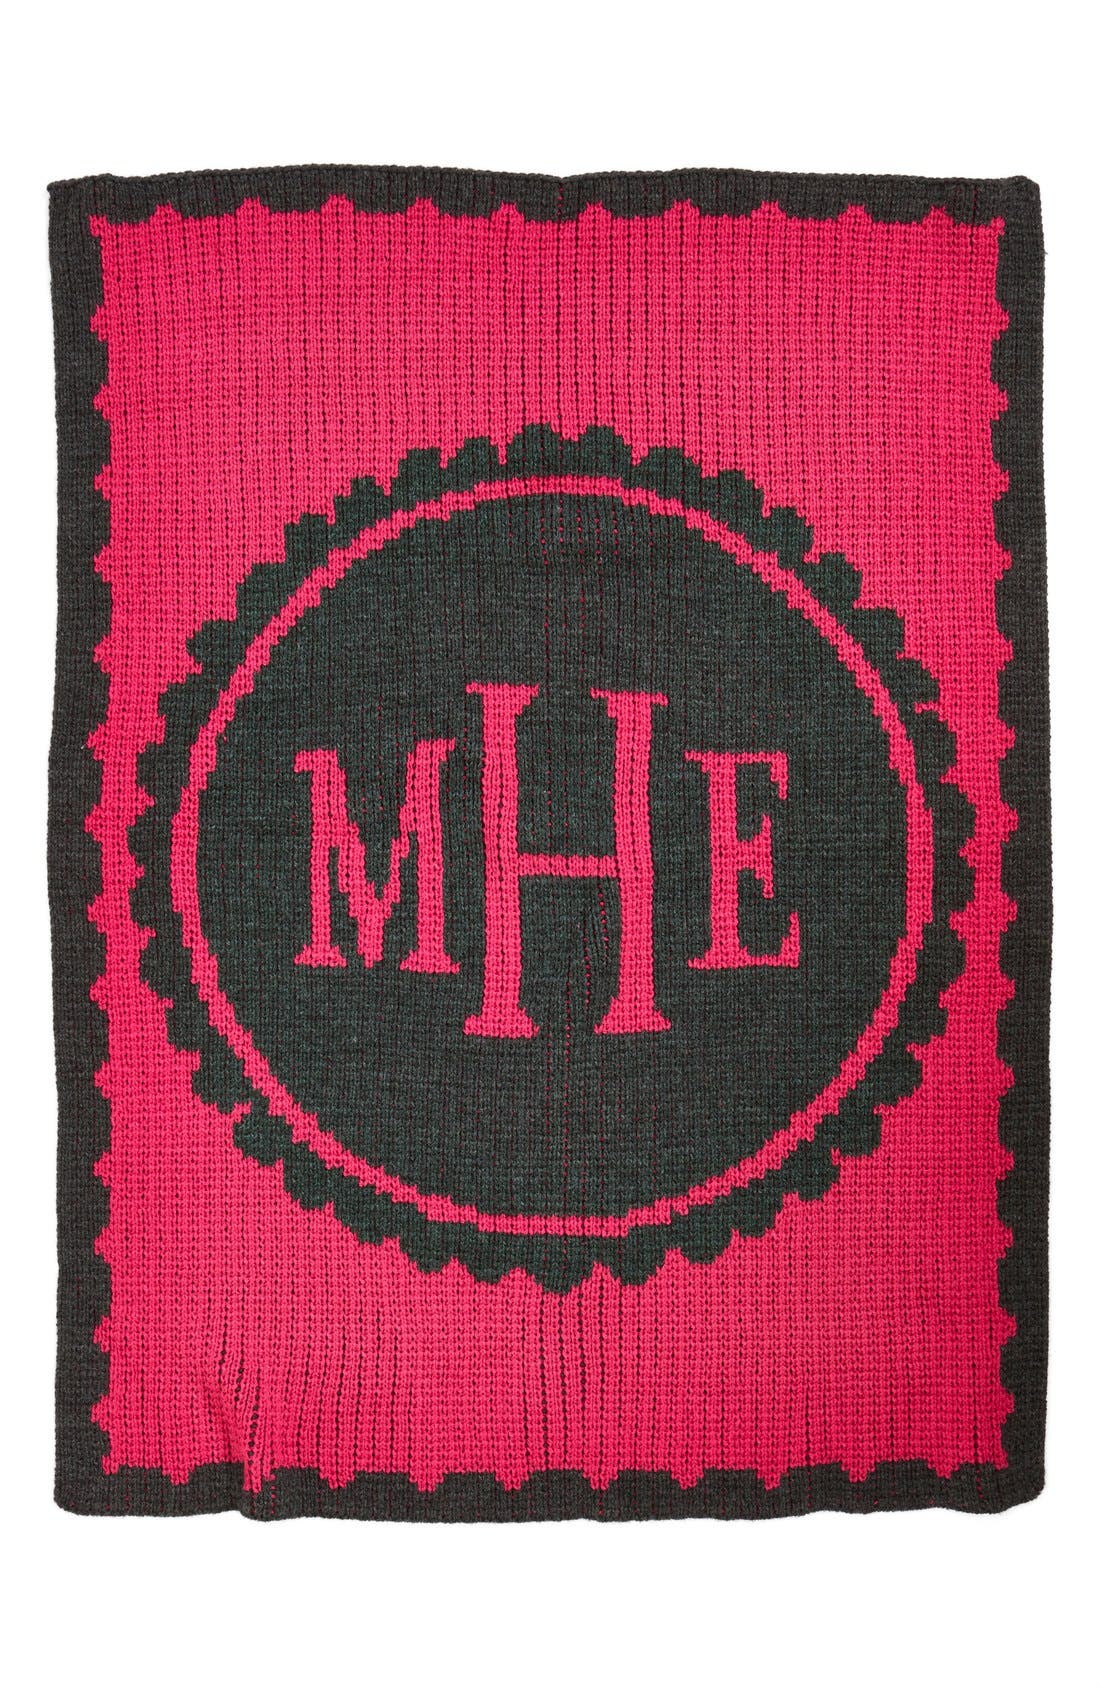 'Scalloped - Large' Personalized Blanket,                         Main,                         color, FUCHSIA/ CHARCOAL GREY